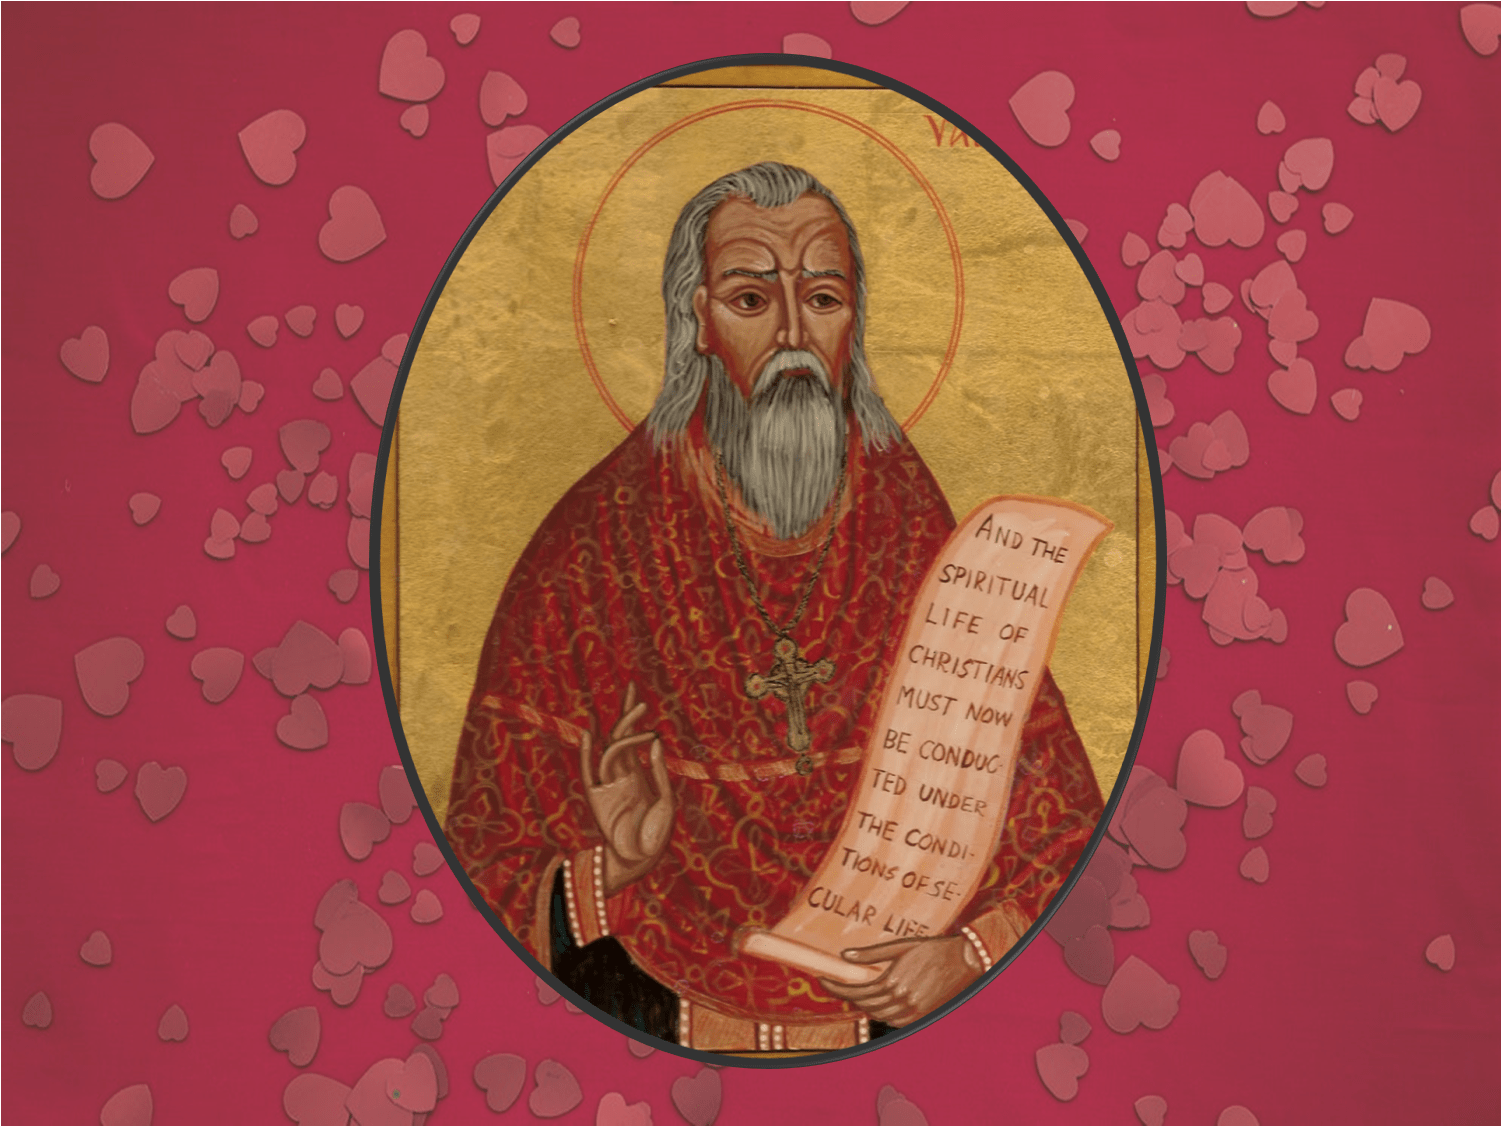 The punished St. Valentine